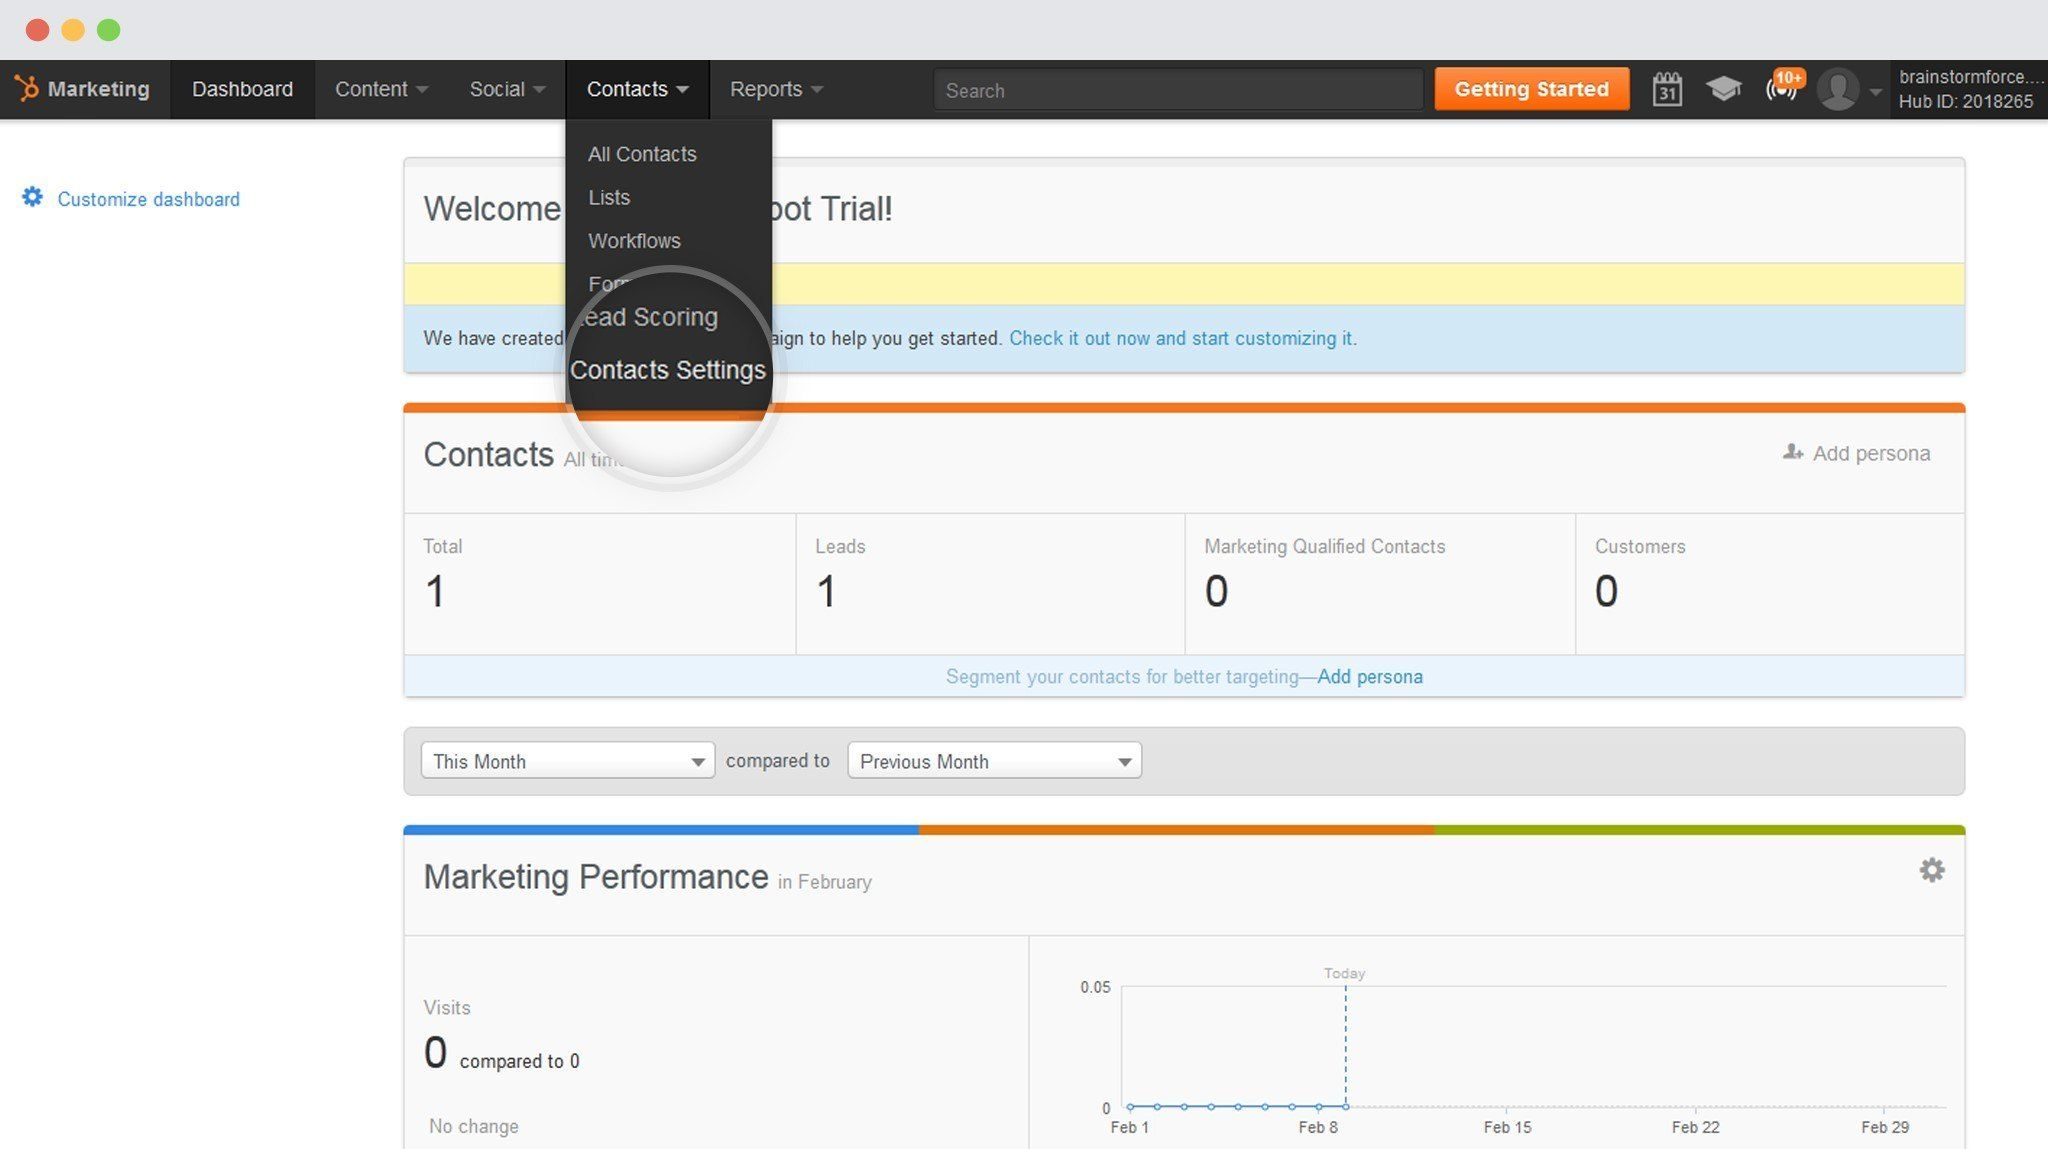 Contact - Settings in HubSpot